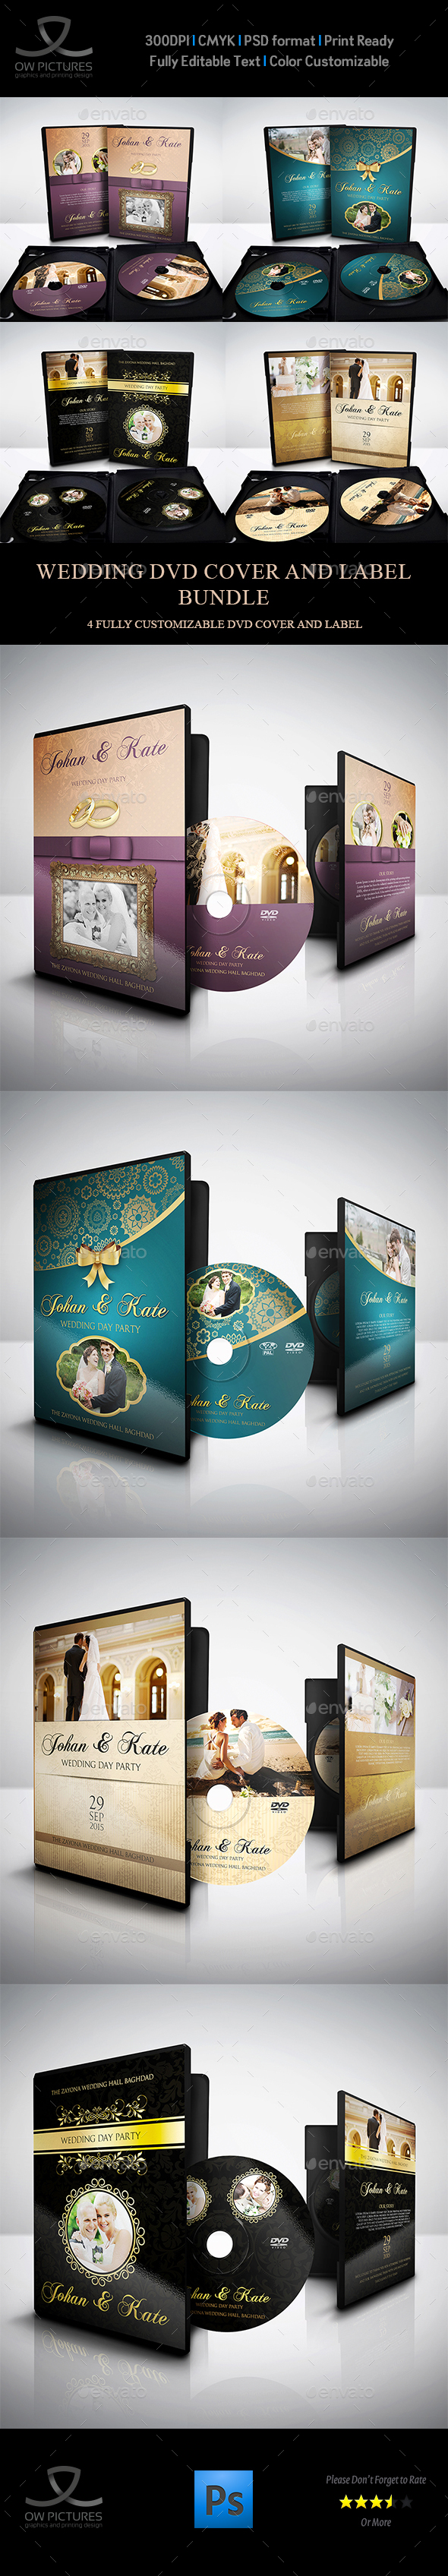 Wedding DVD Cover and Label Template Bundle Vol.1 - CD & DVD Artwork Print Templates